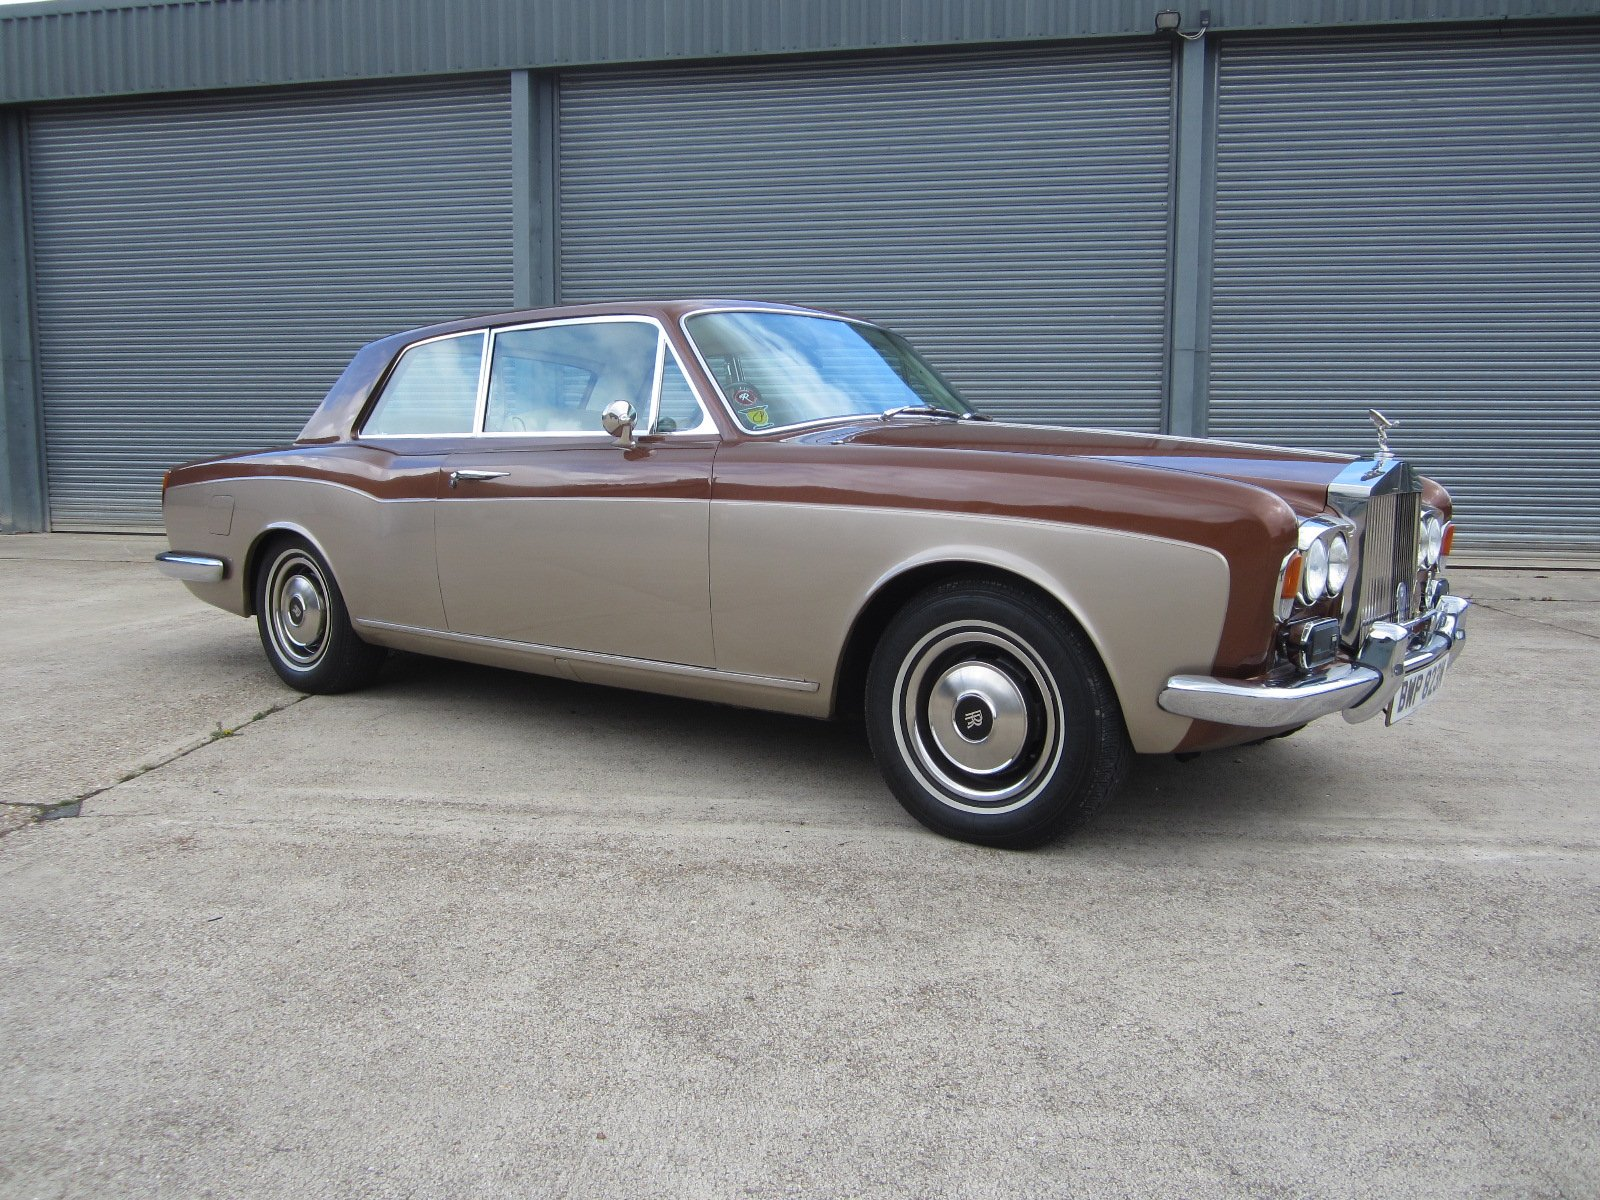 1973 Rolls Royce Corniche I Fhc Vintage Car For Sale